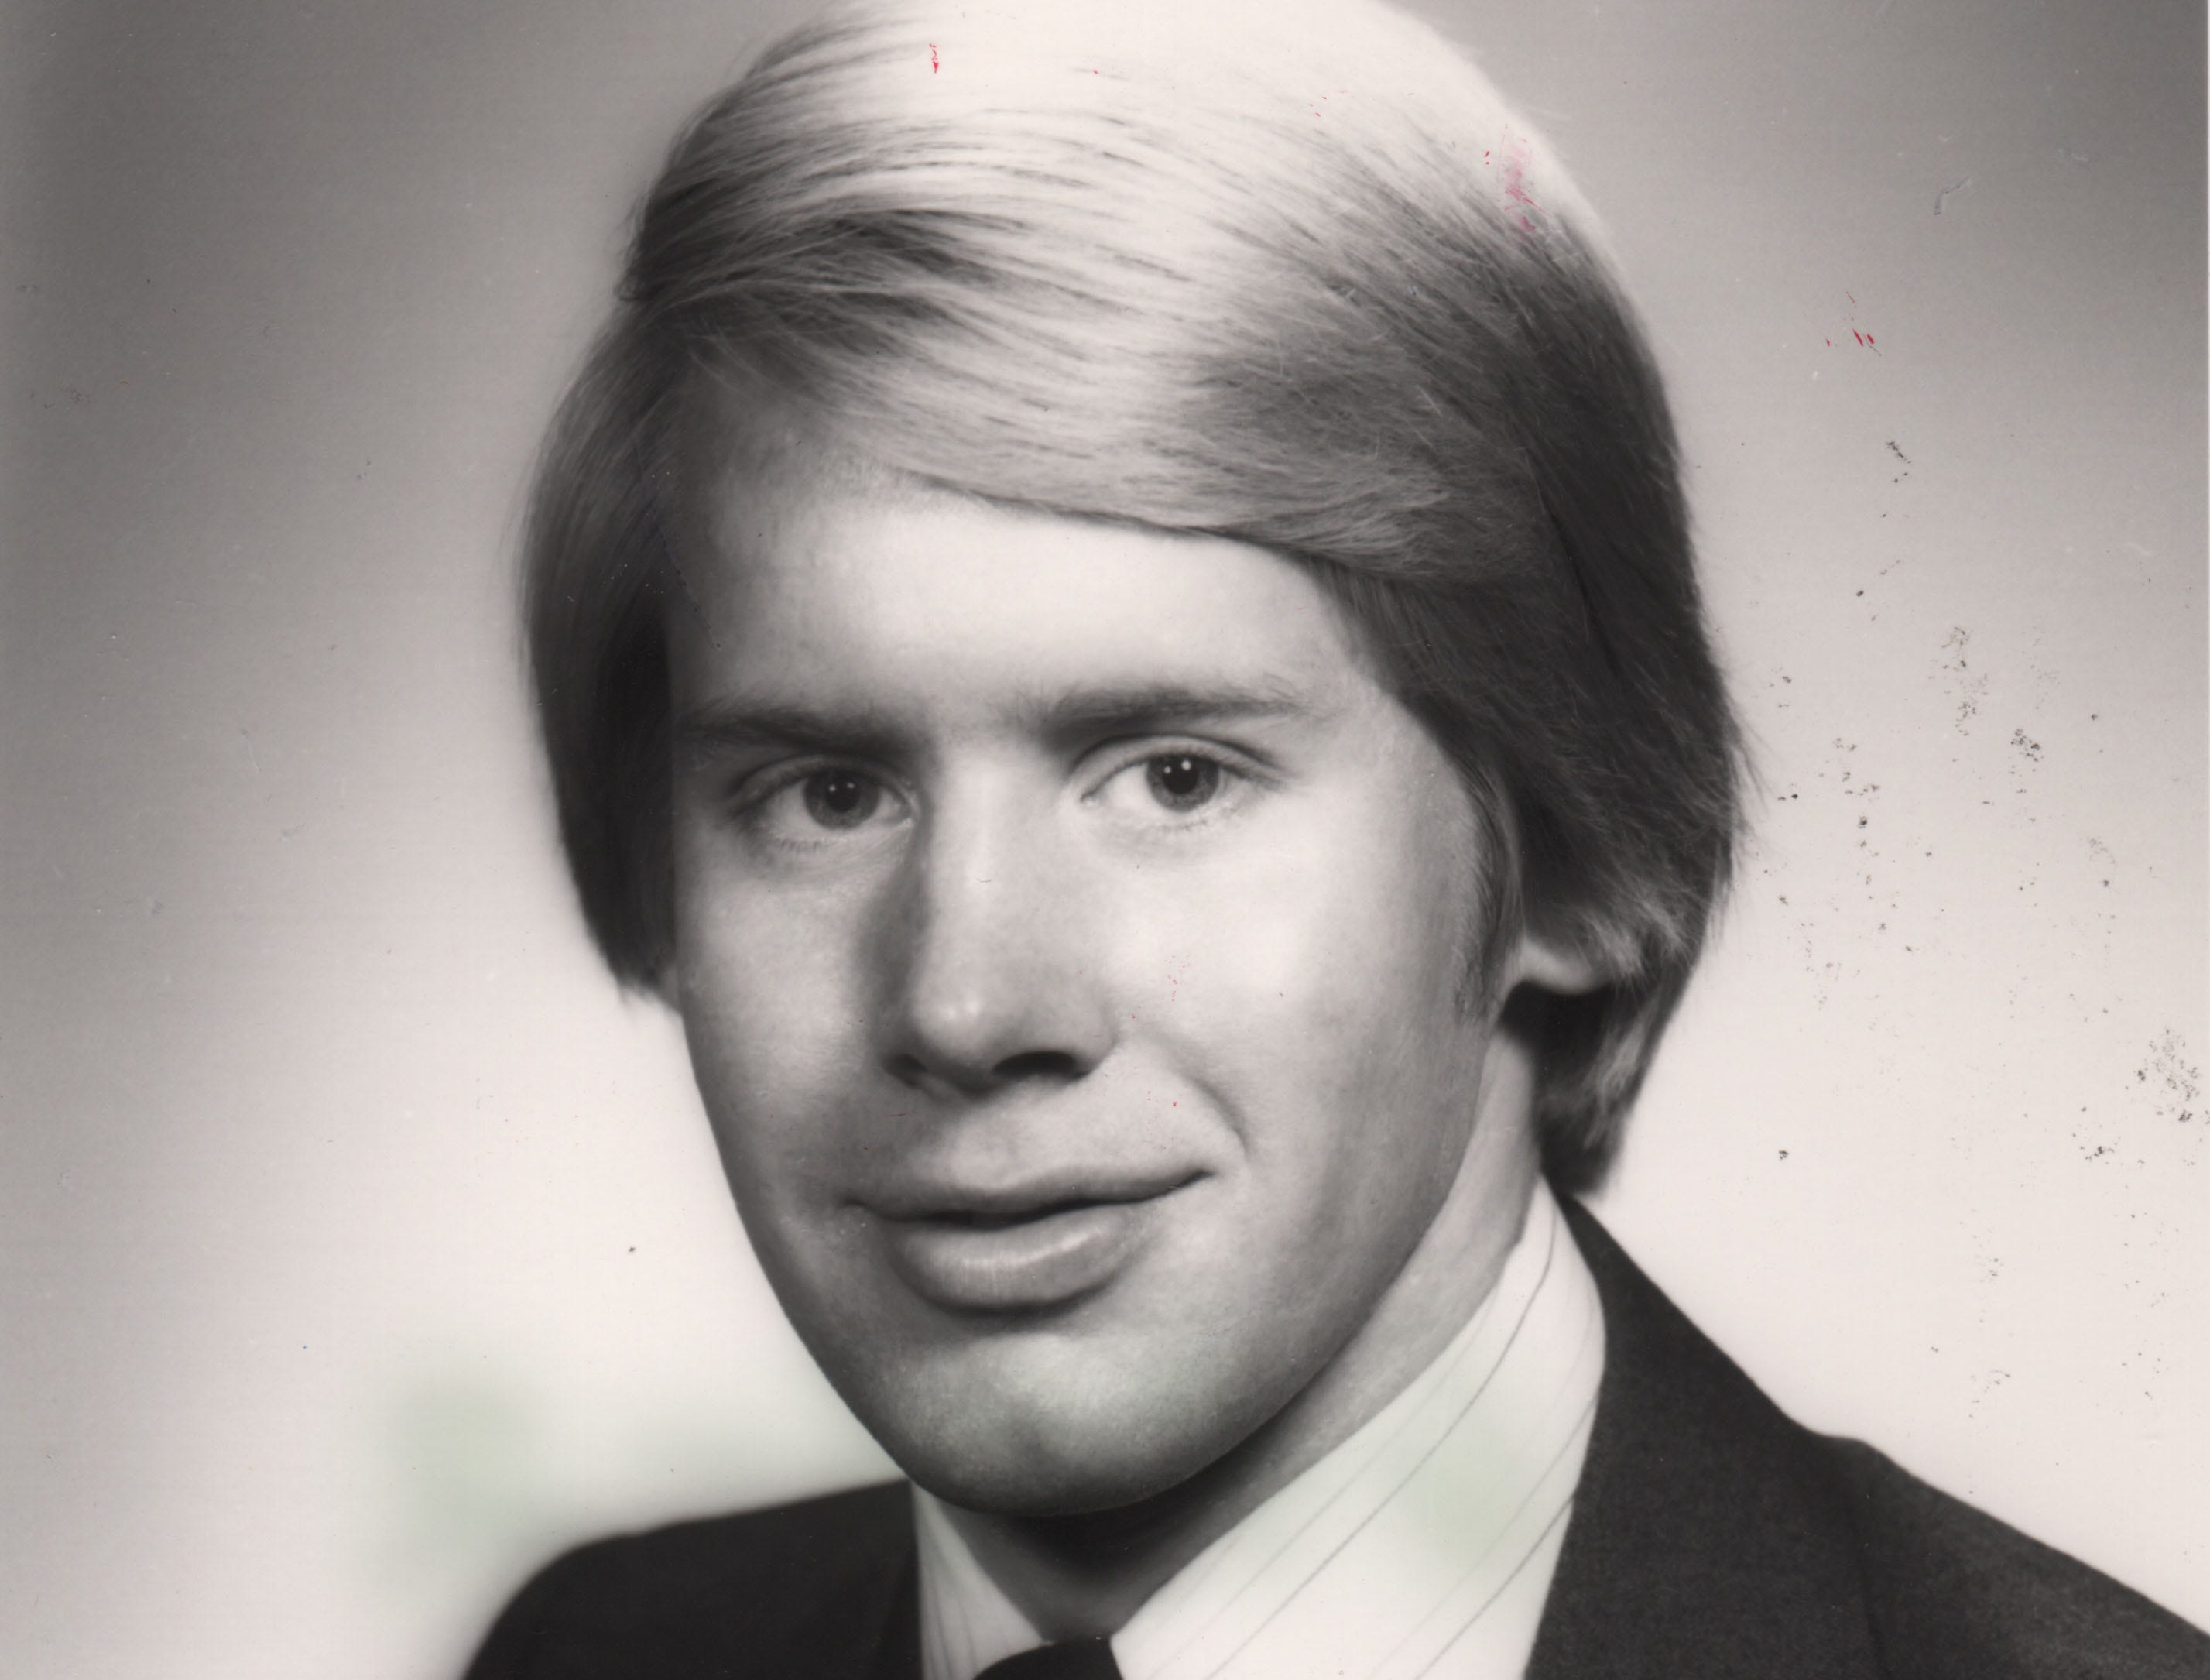 After graduating from the University of Cincinnati in 1976, Carl Lindner III took a position at American Financial Group.